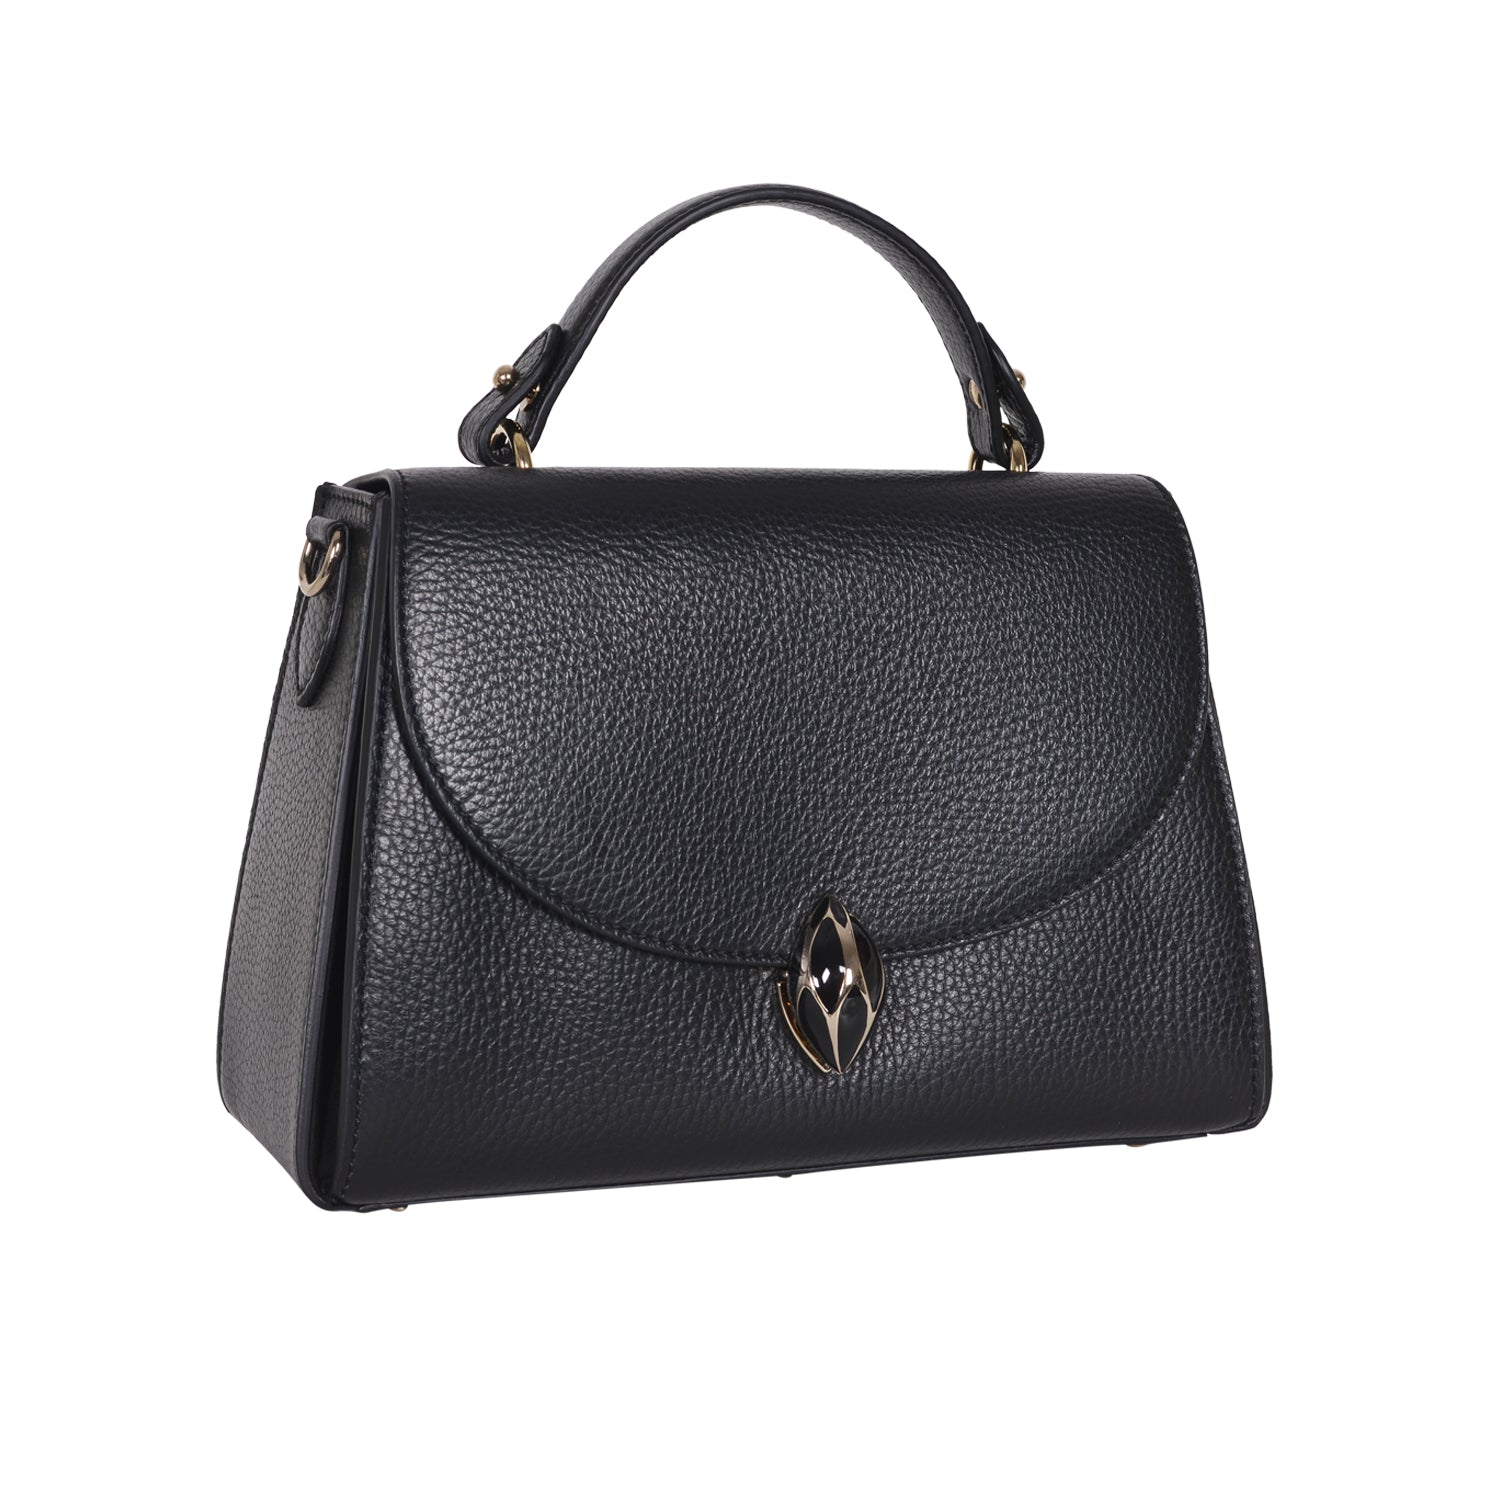 F.E.V BLACK GRAIN LEATHER CORTINA TOP HANDLE BAG